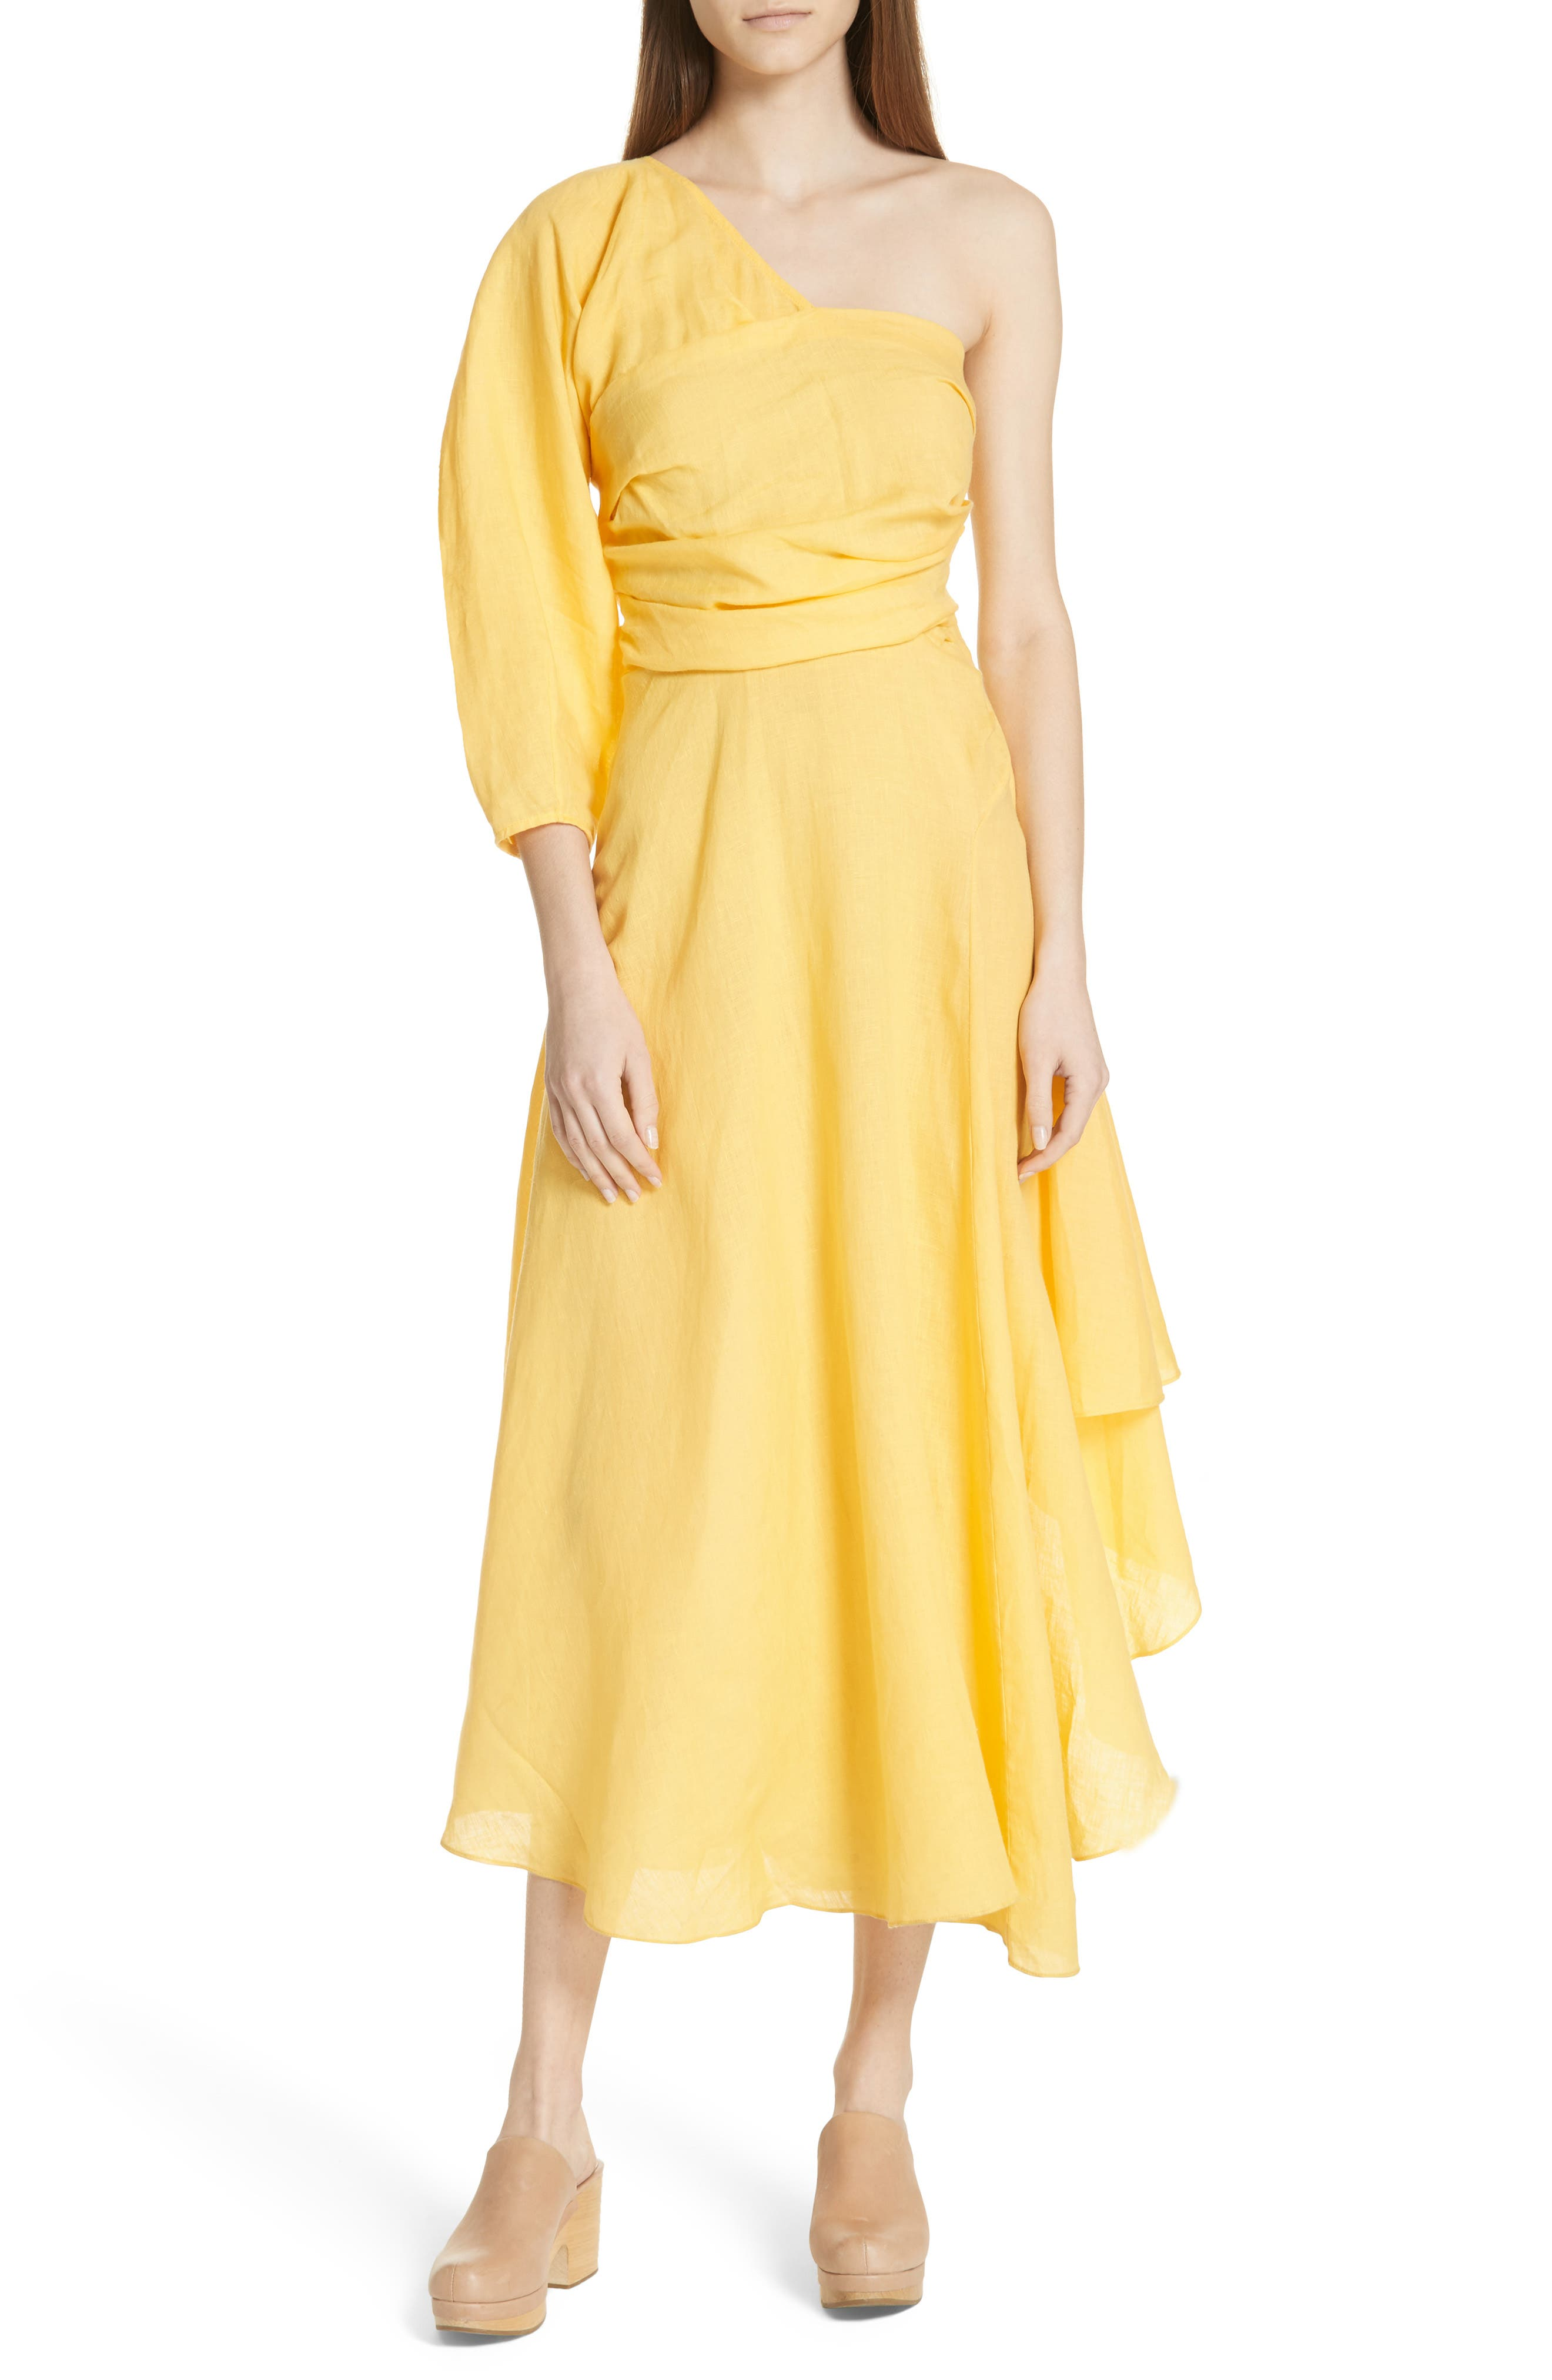 Tipple One-Shoulder Dress,                         Main,                         color, YELLOW